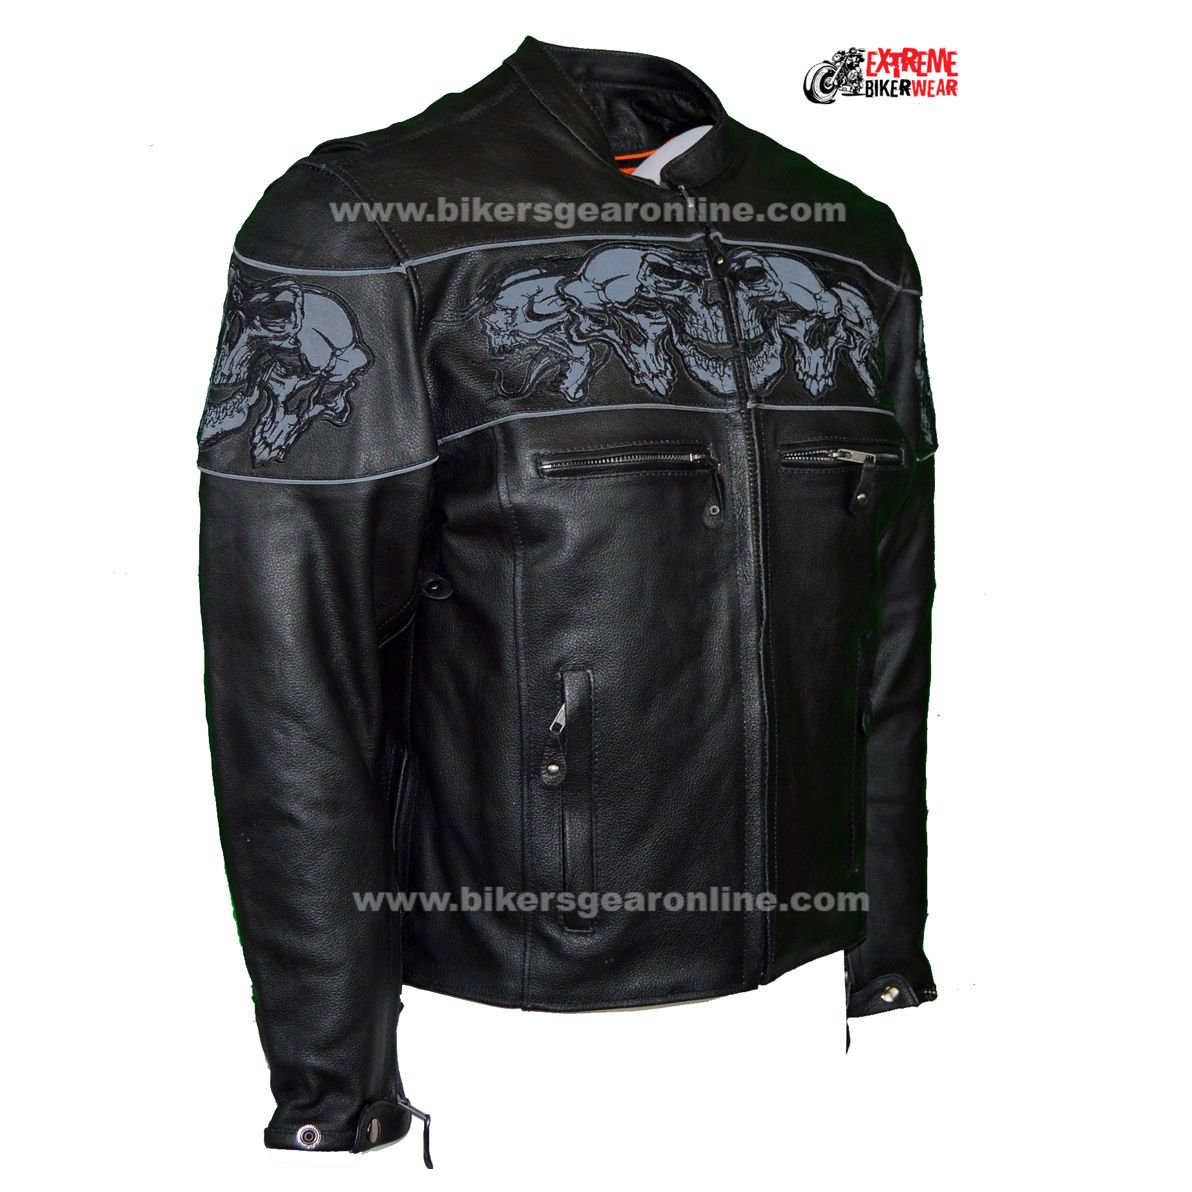 Dream Men's Motorcycle Riding Blk Reflective Skull Leather Jacket Big Sizes Upto 10xl (6XL Regular) by Dream (Image #3)